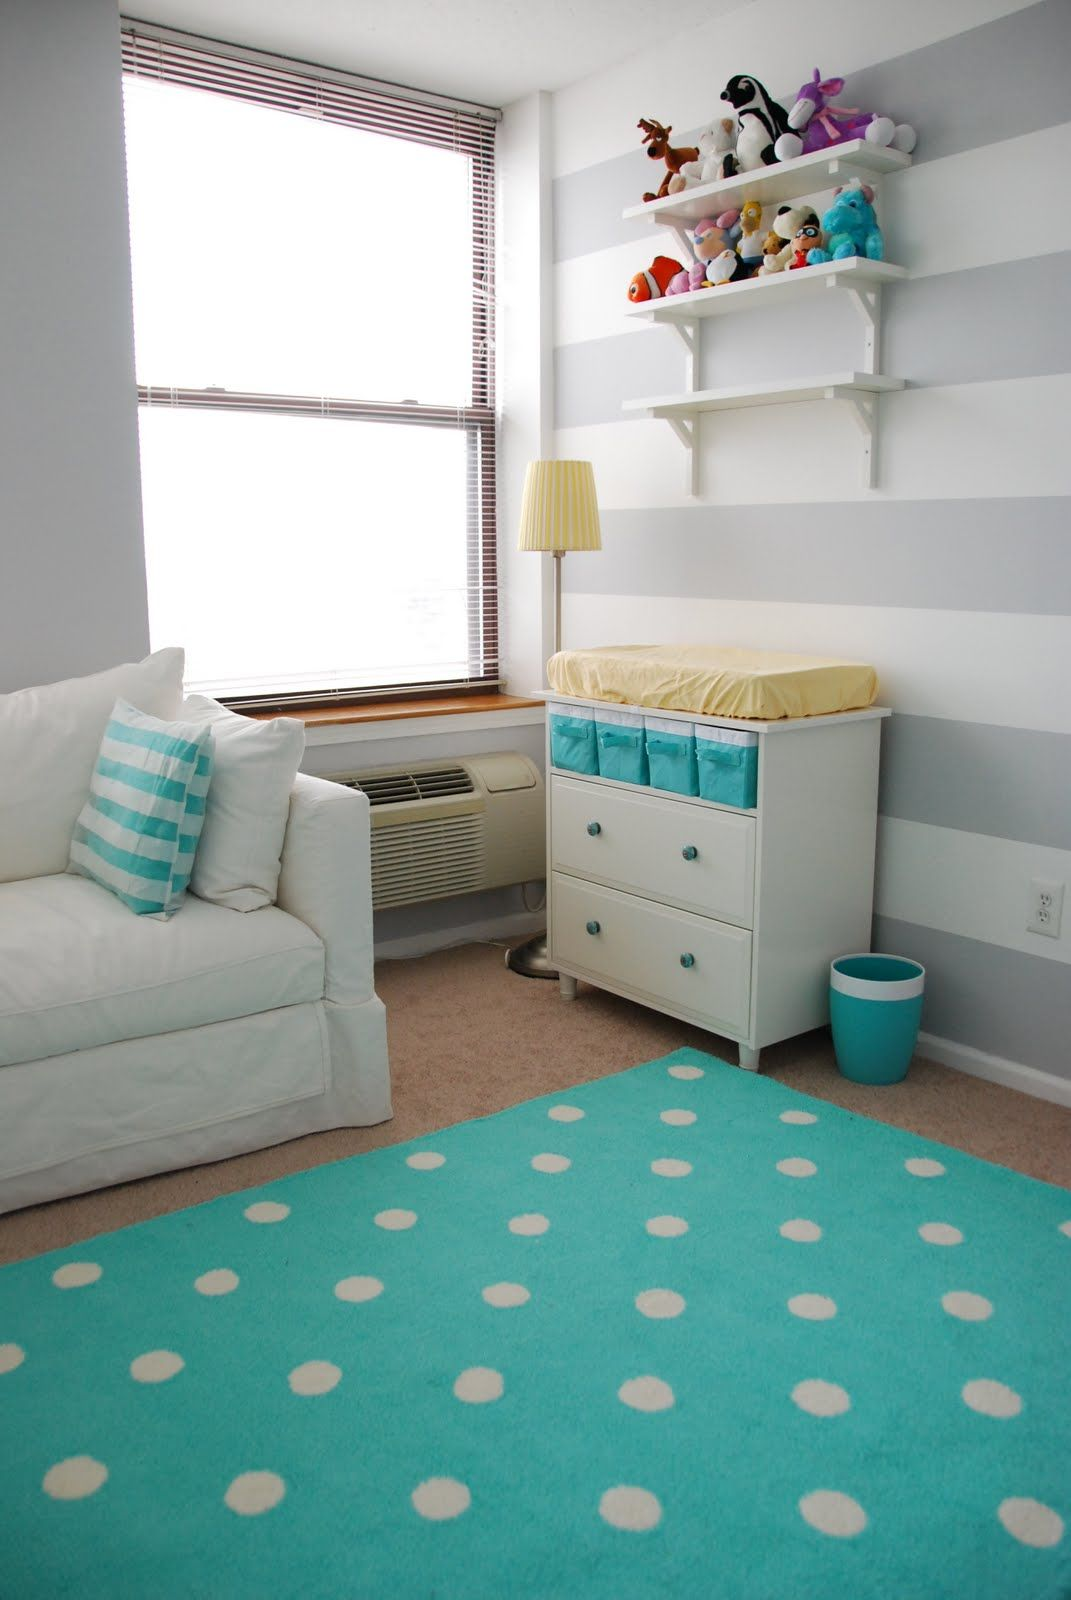 White And Gray Striped Walls For The Baby Room For The